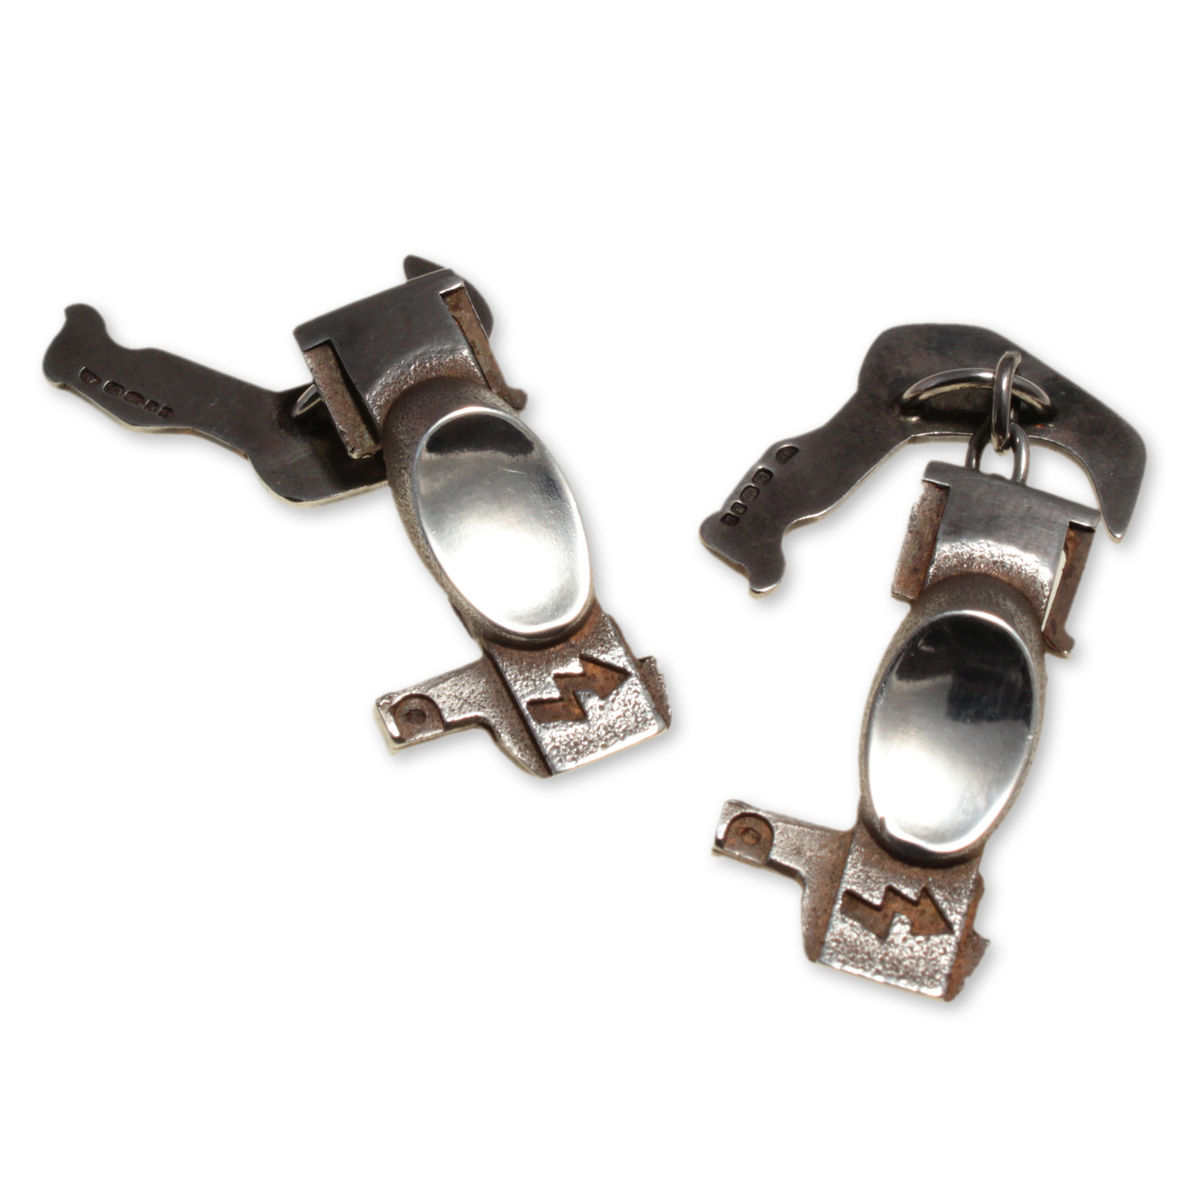 7k Cufflinks - product images  of